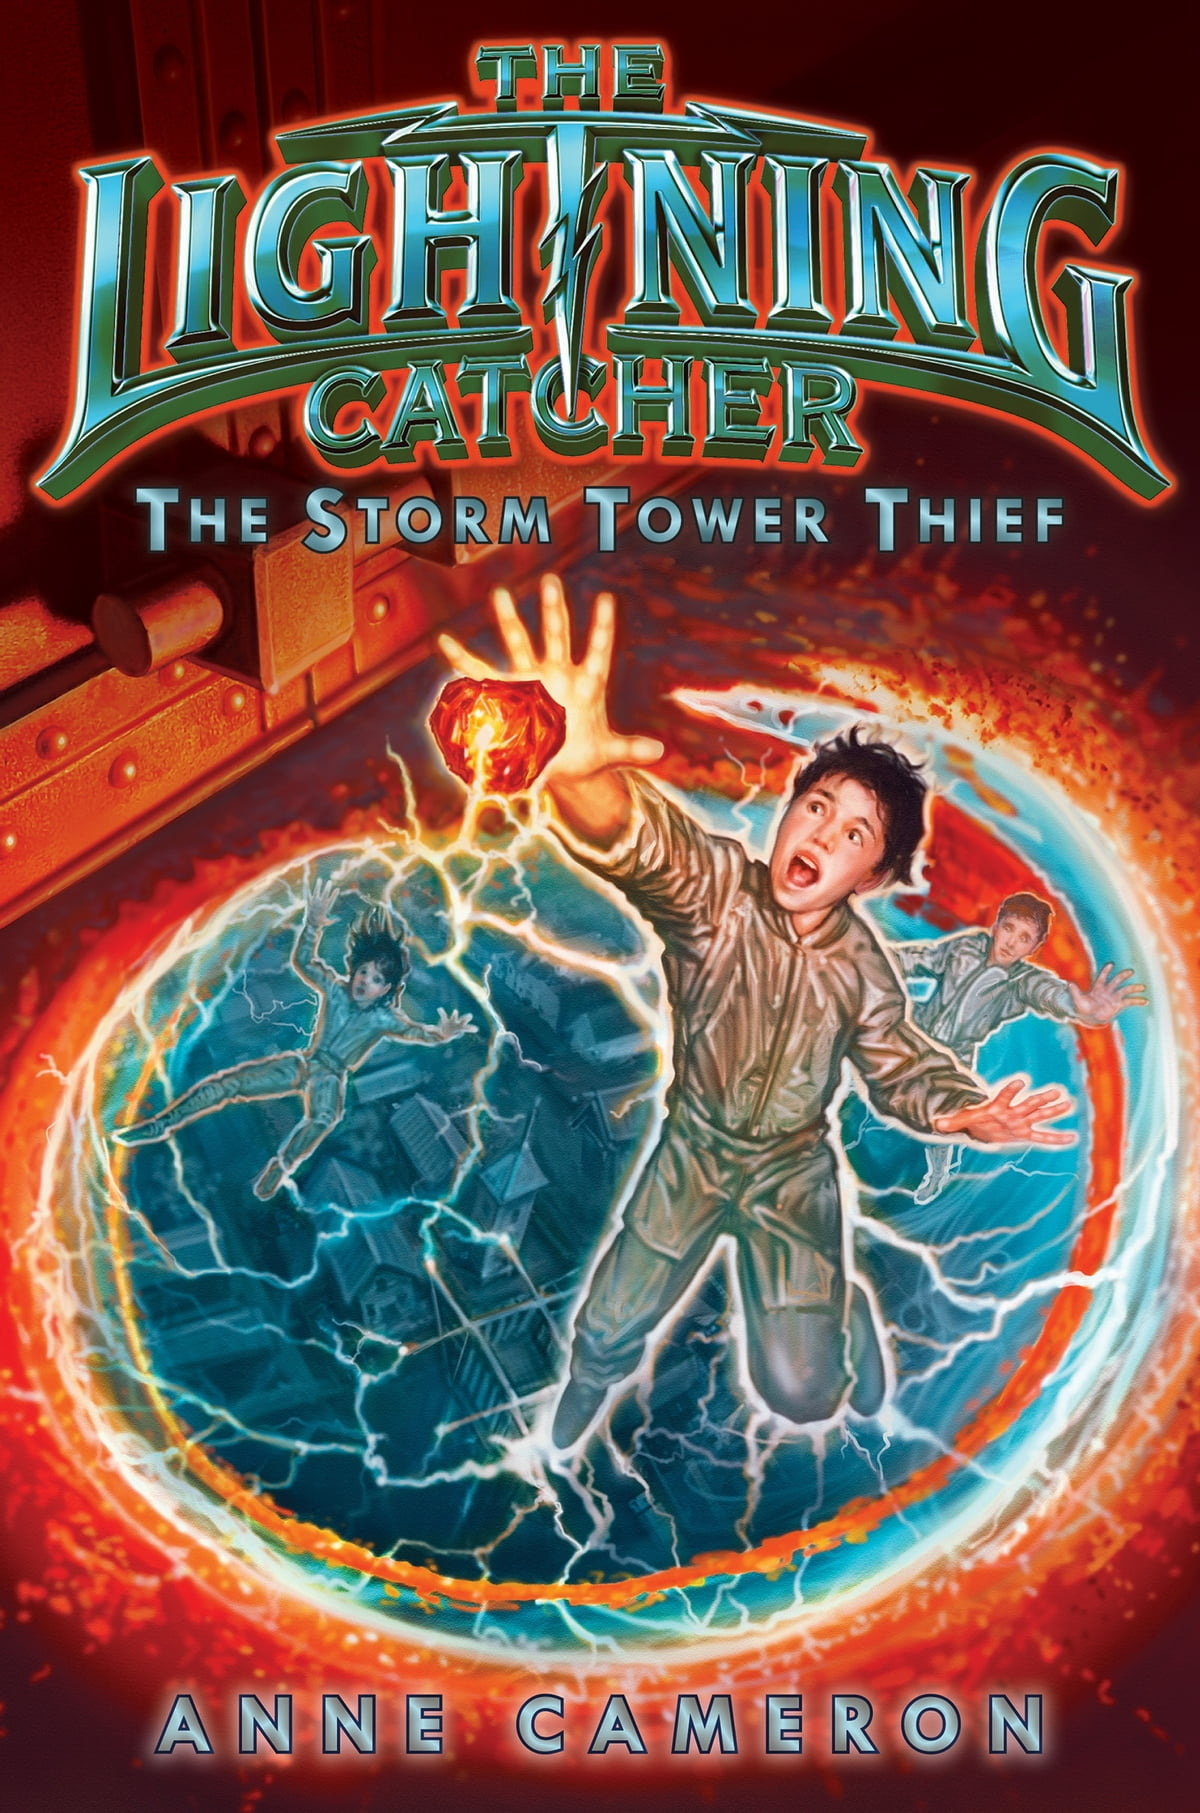 The Storm Tower Thief eBook by Anne Cameron - 9780062112828 | Rakuten Kobo